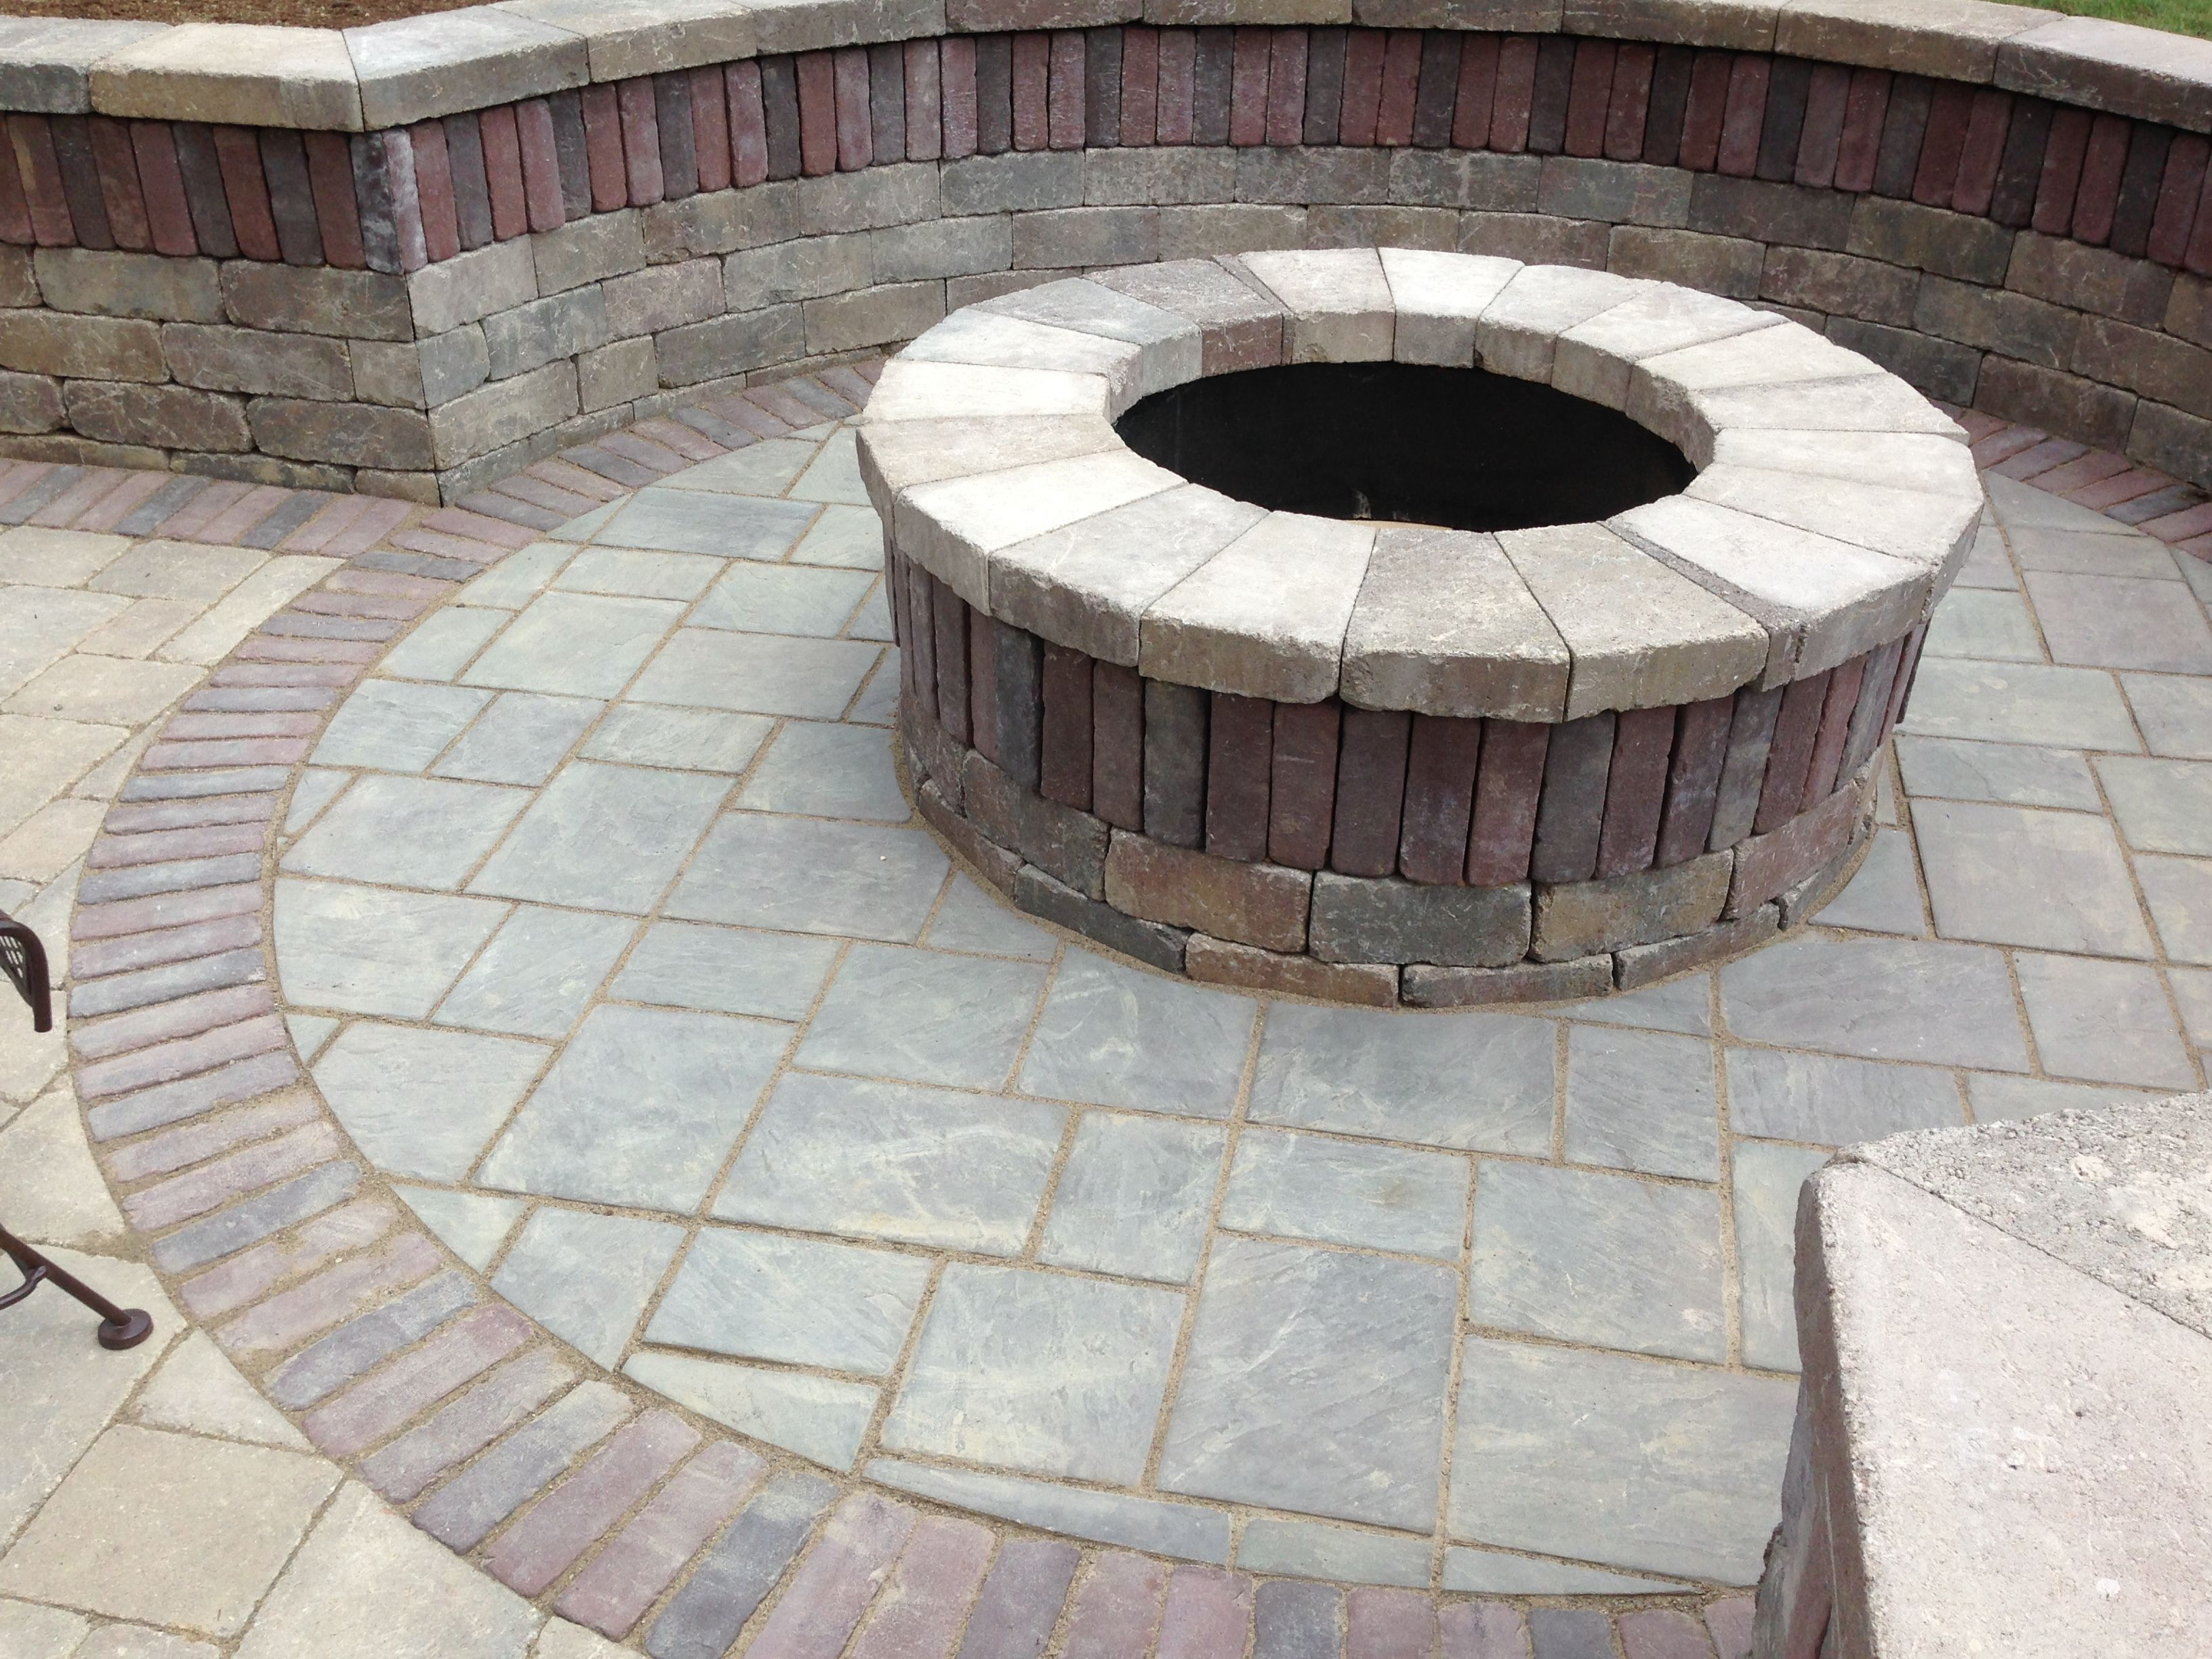 Brussels Block Fire Pit With Limestone Caps Outside Patio Fire Pit Outdoor Rooms